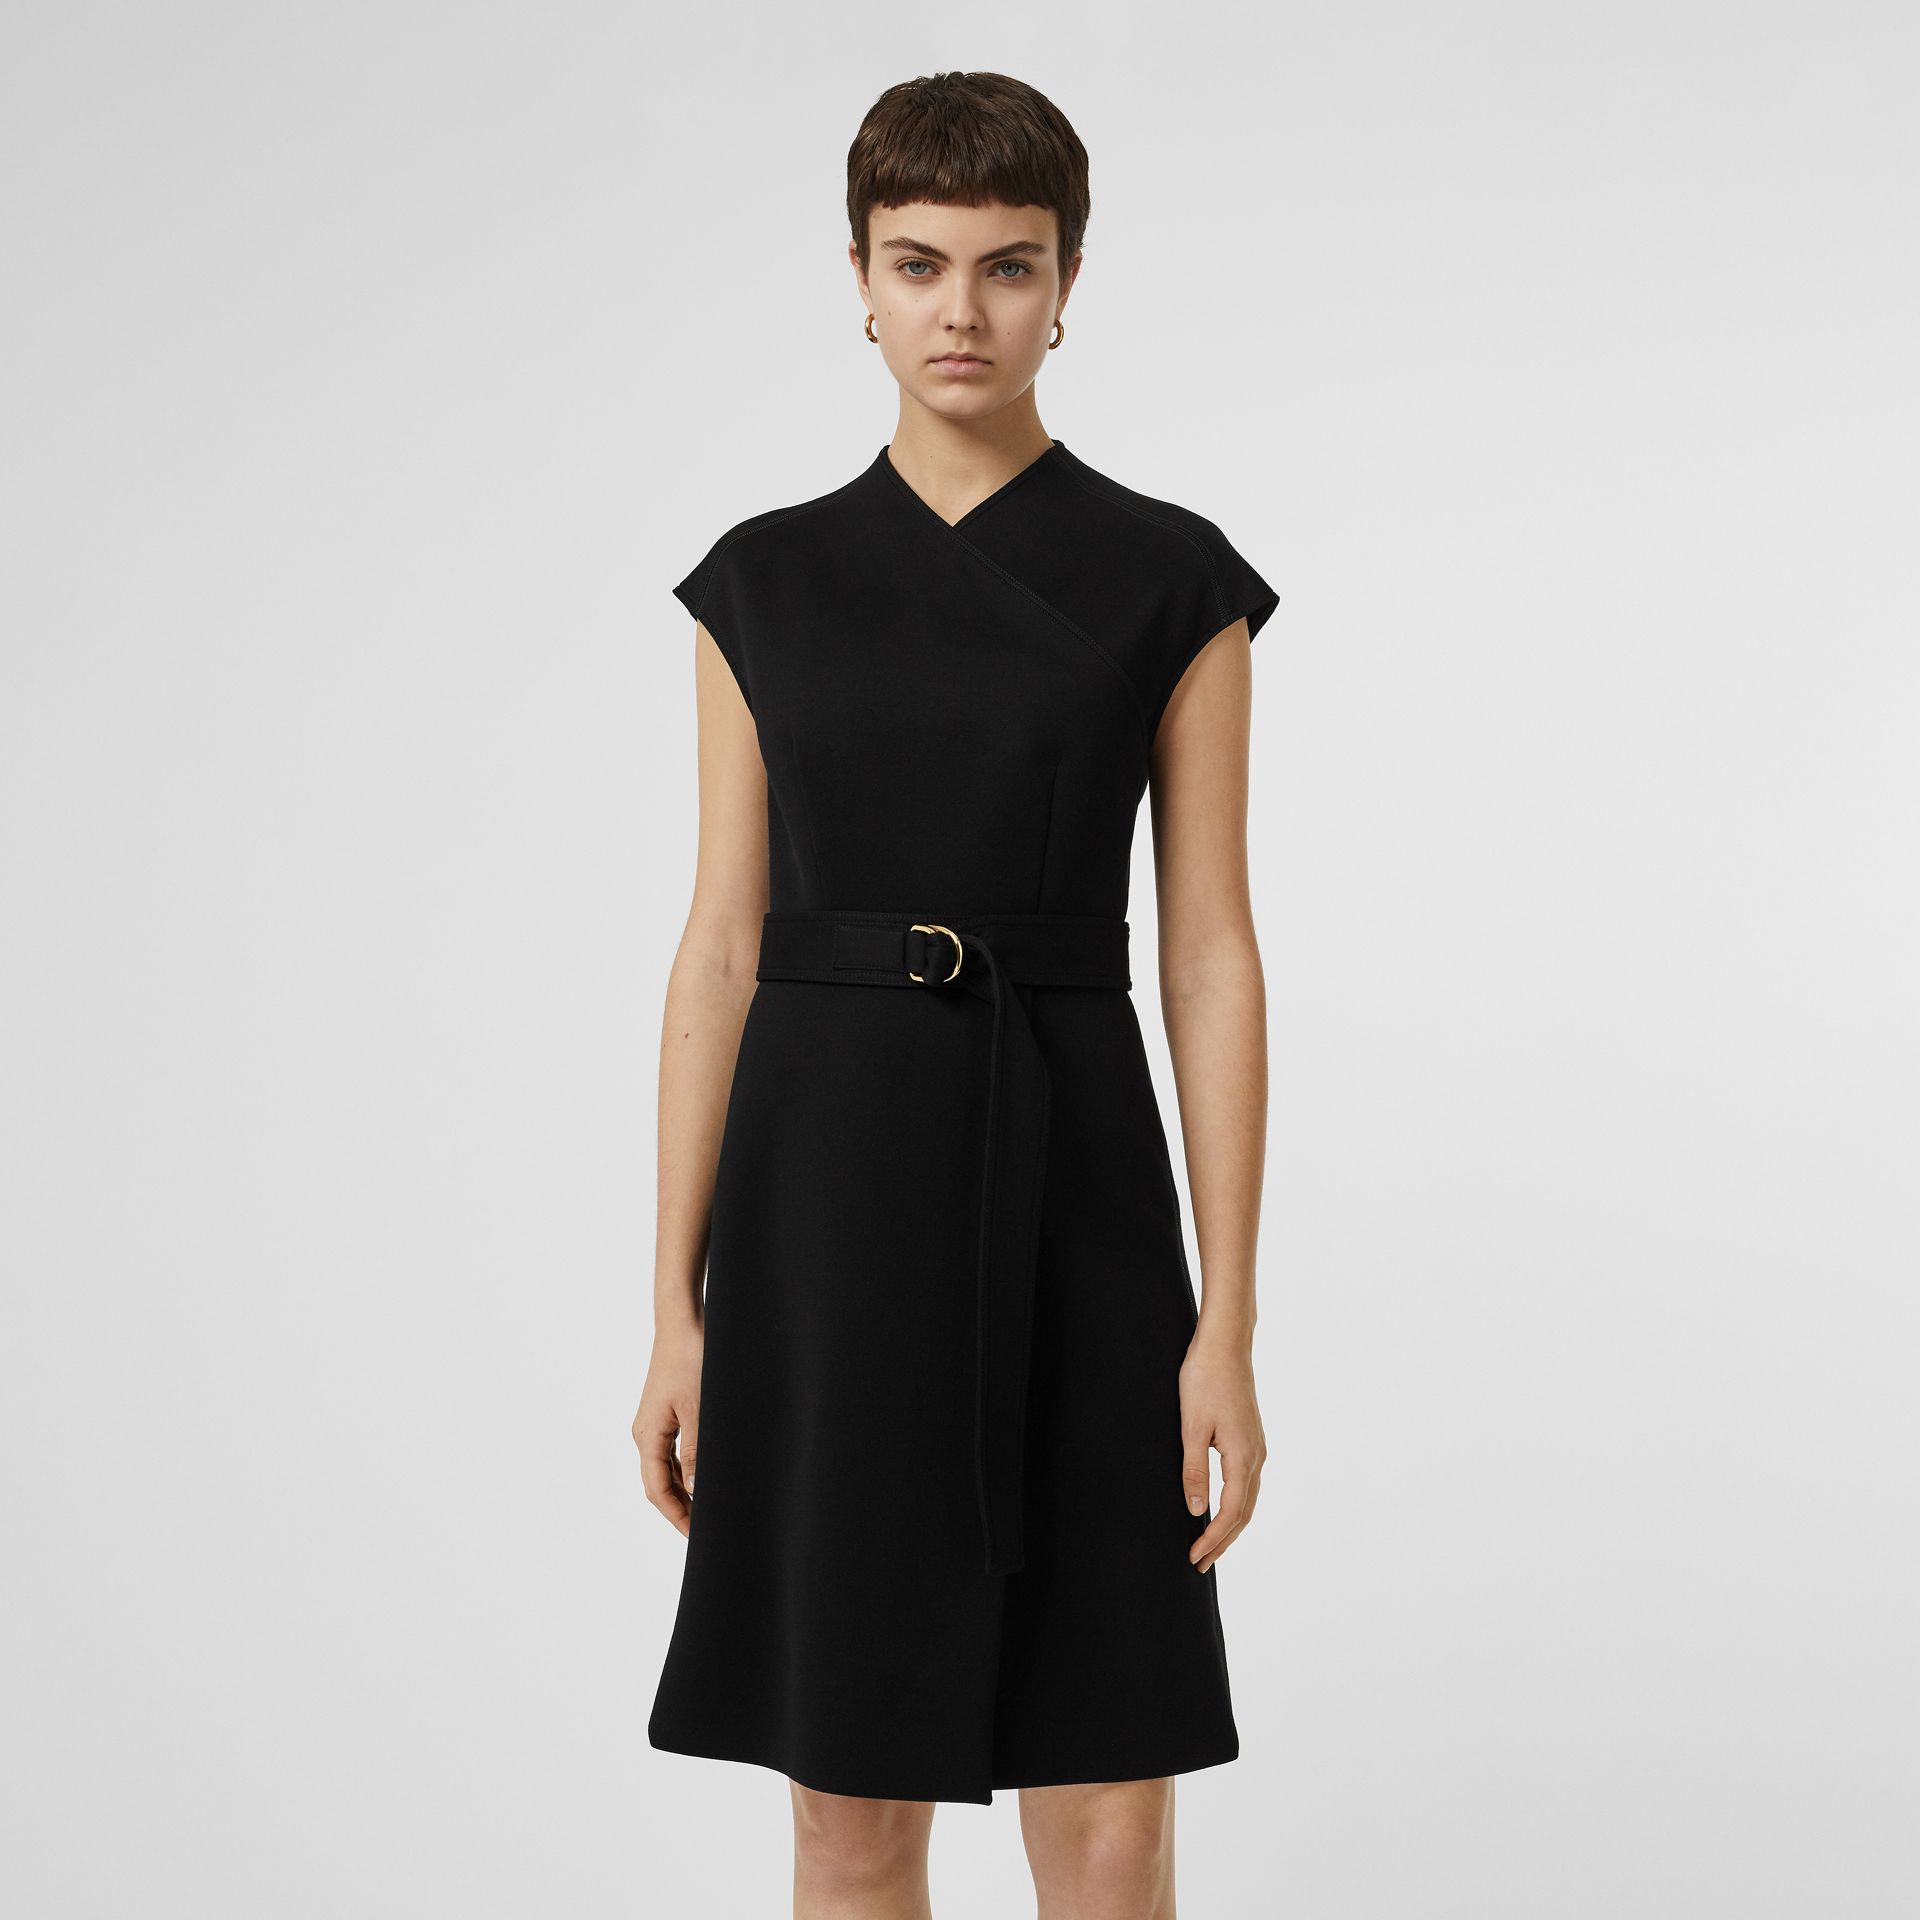 D-ring Detail Bonded Jersey Dress in Black - Women | Burberry Canada - gallery image 5